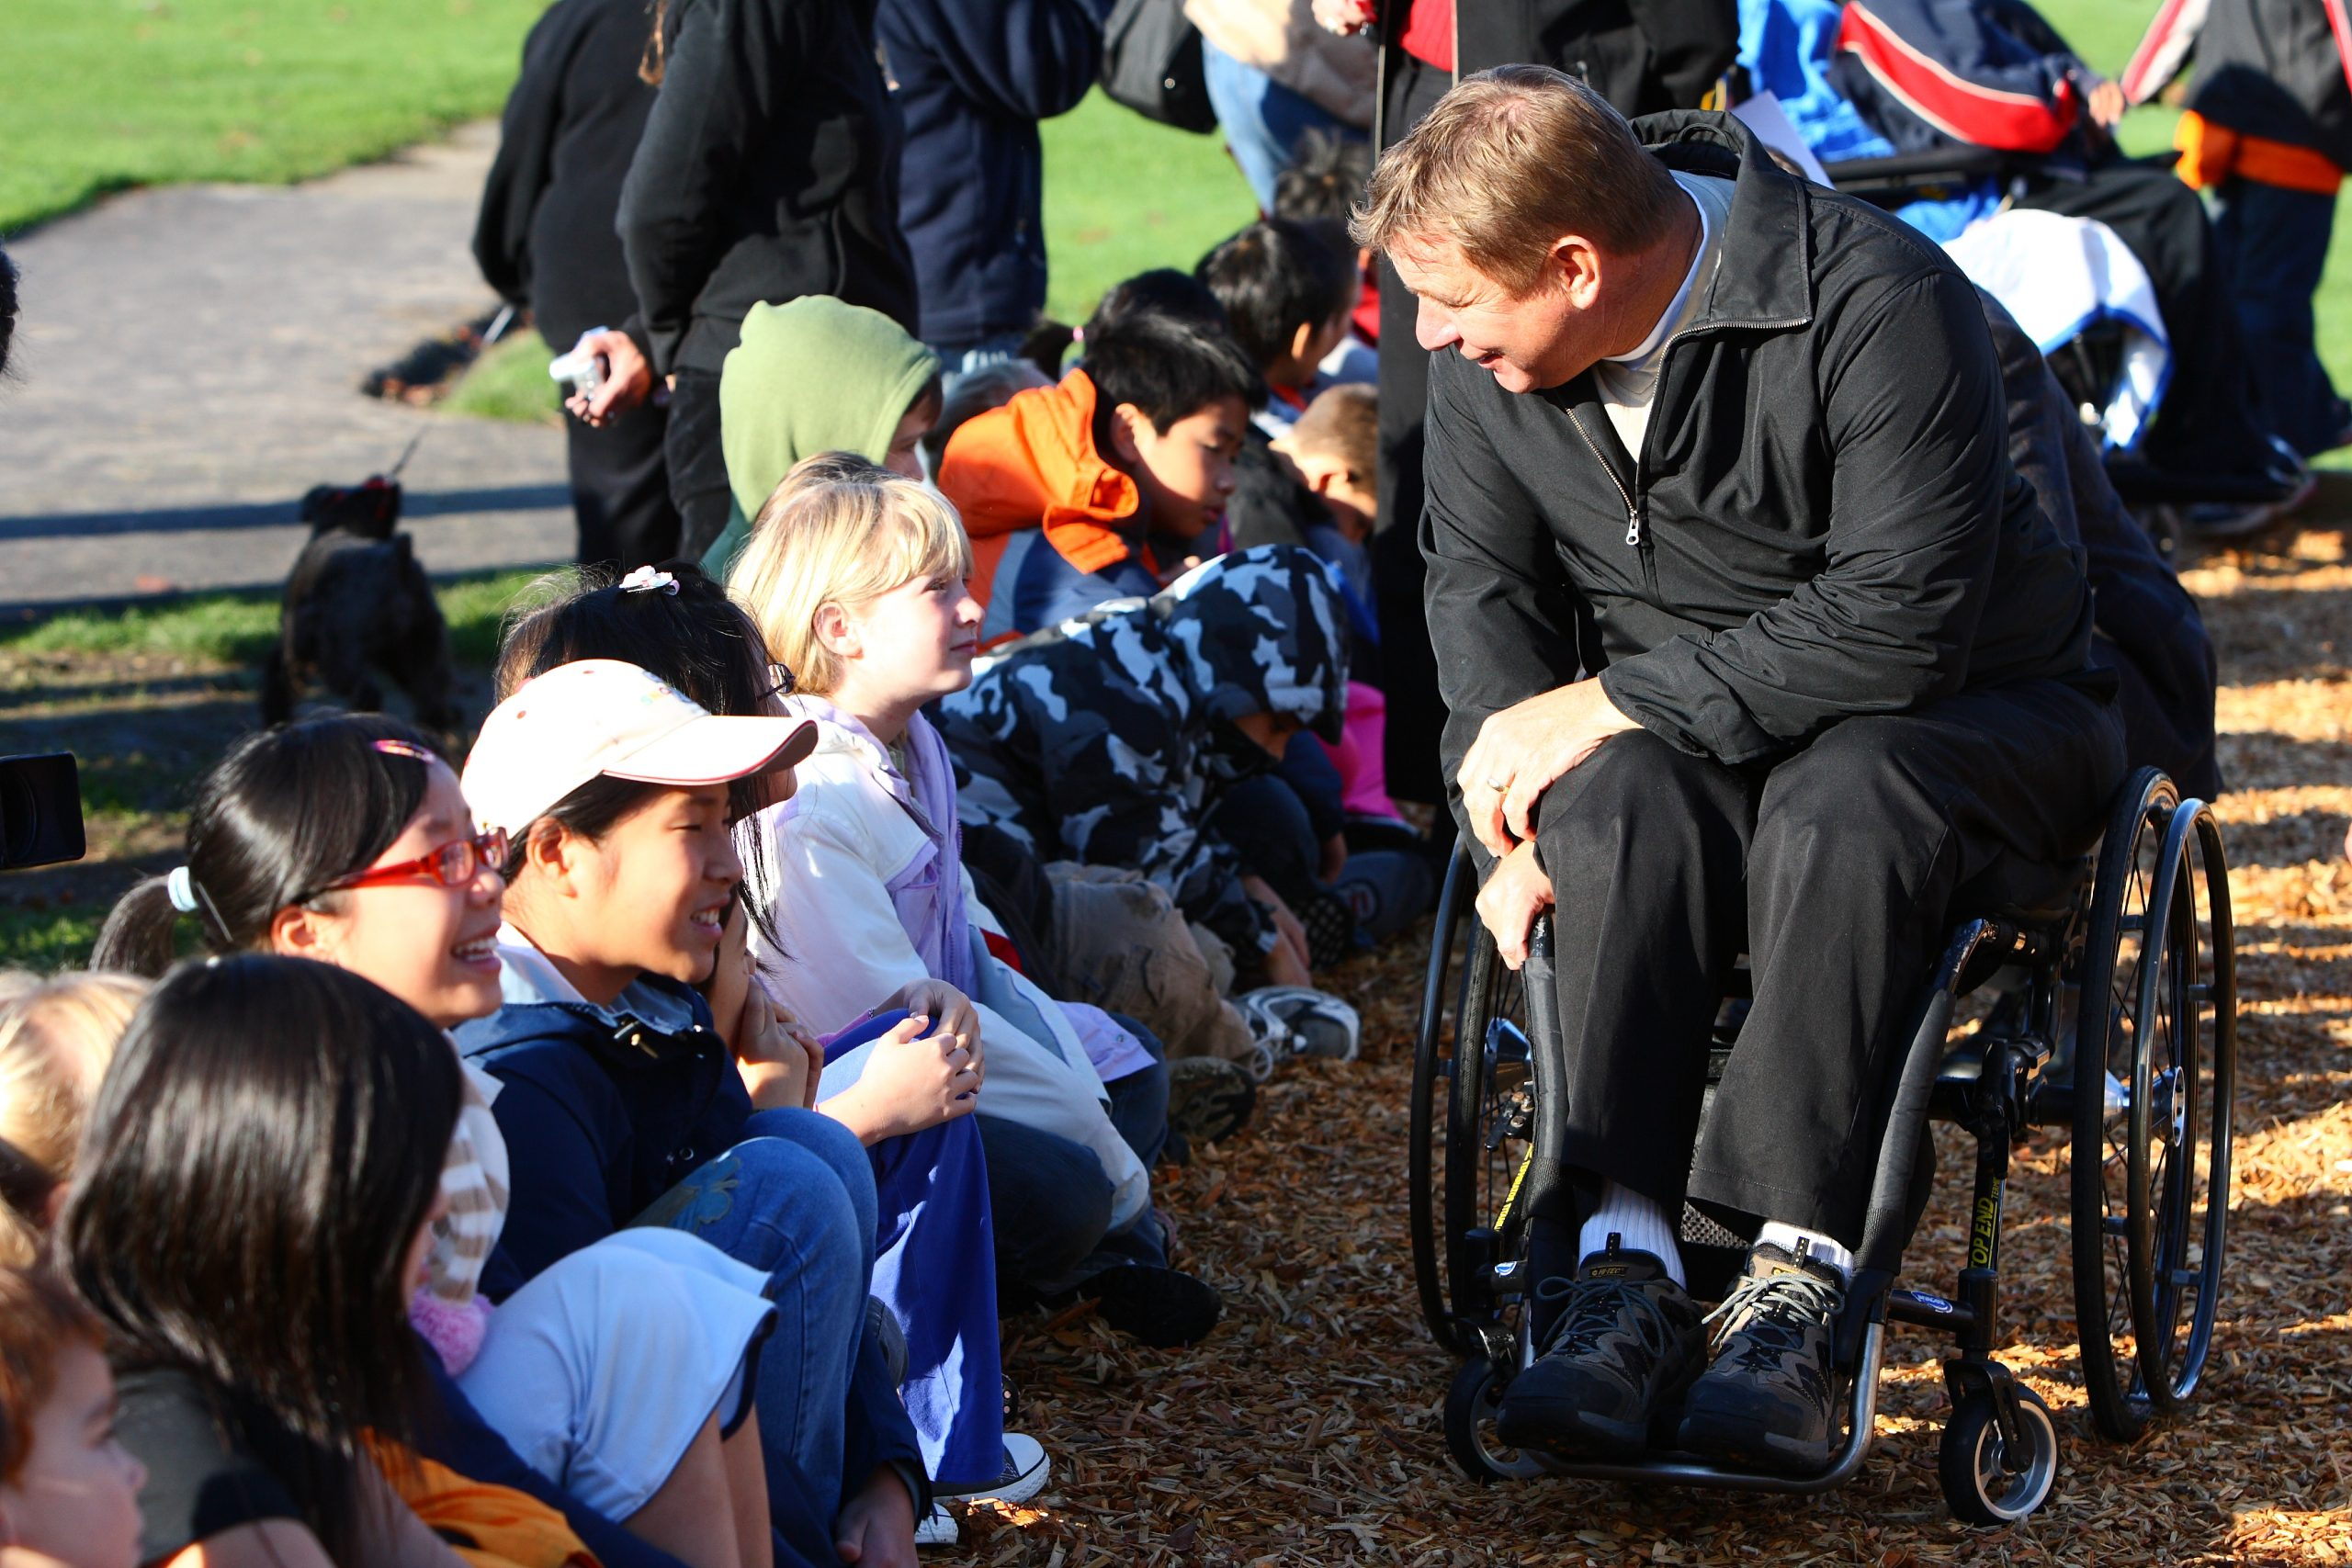 Rick Hansen interacting with children